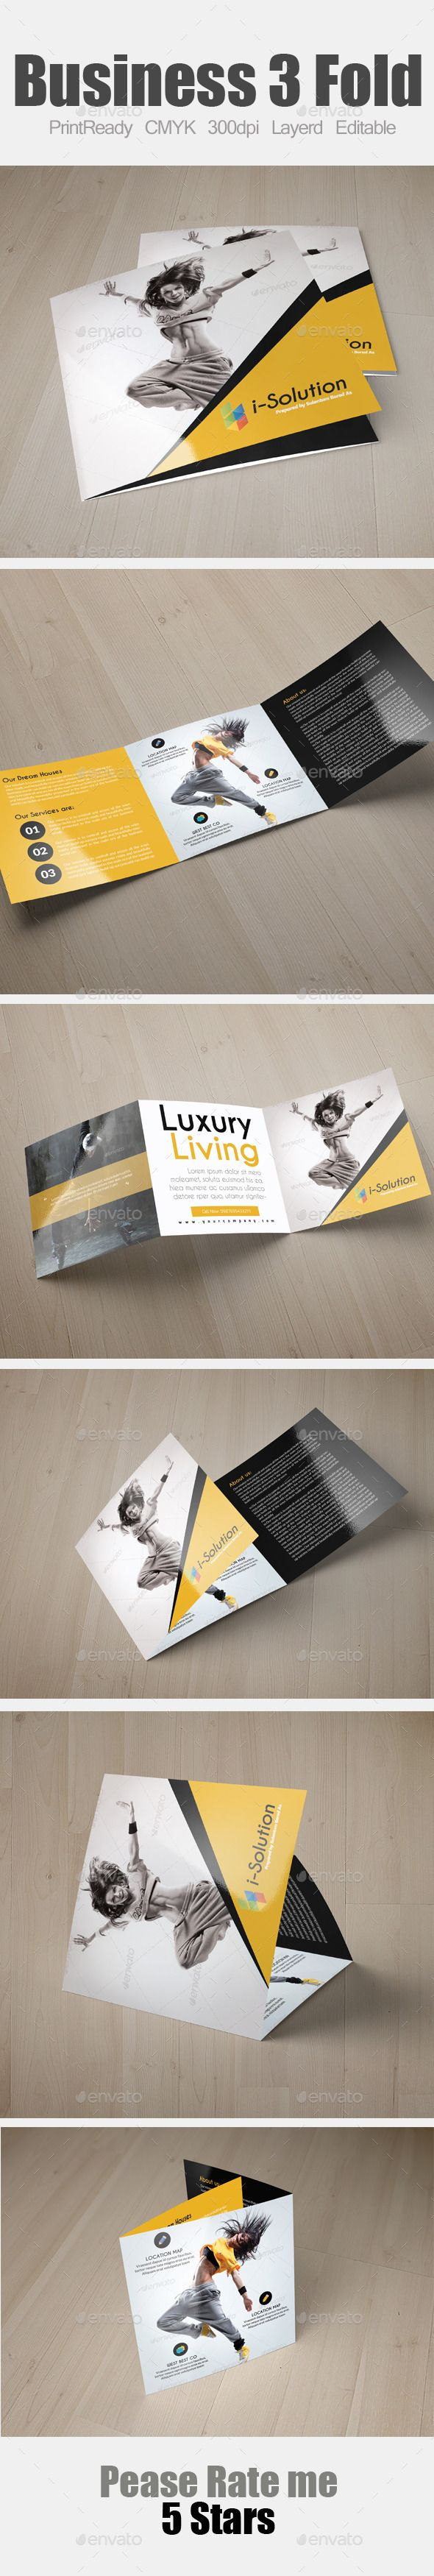 Dance Studio Square Trifold Template — Photoshop PSD #square #multipurpose • Available here → https://graphicriver.net/item/dance-studio-square-trifold-template/11237946?ref=pxcr